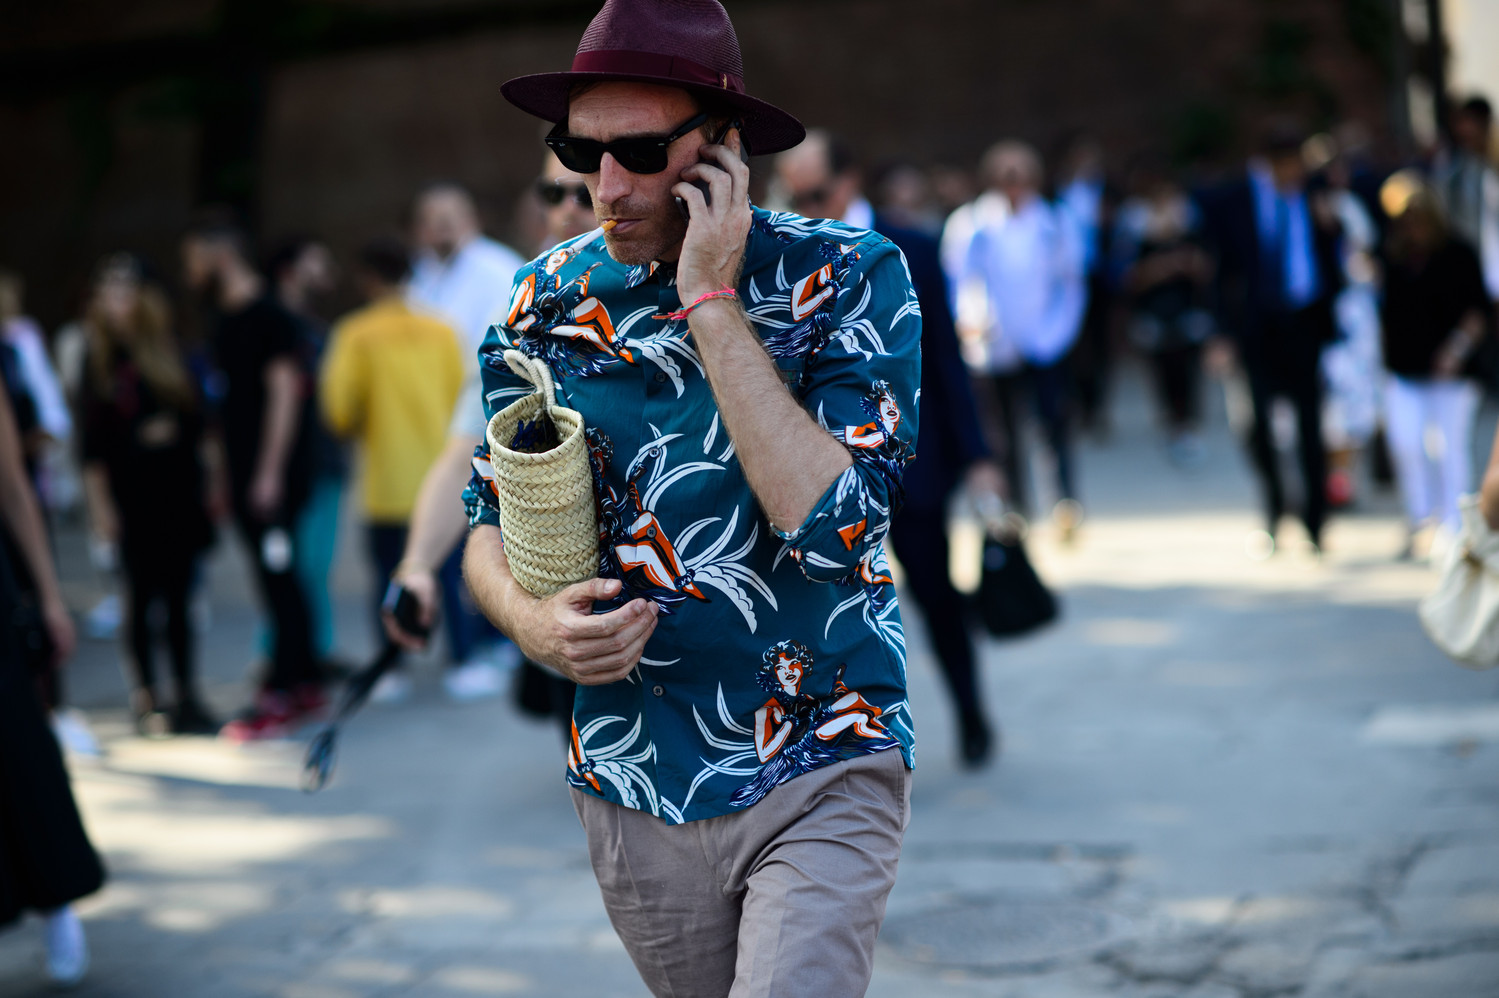 Lyst - Men's Hawaiian Shirts Are In Style (Again)